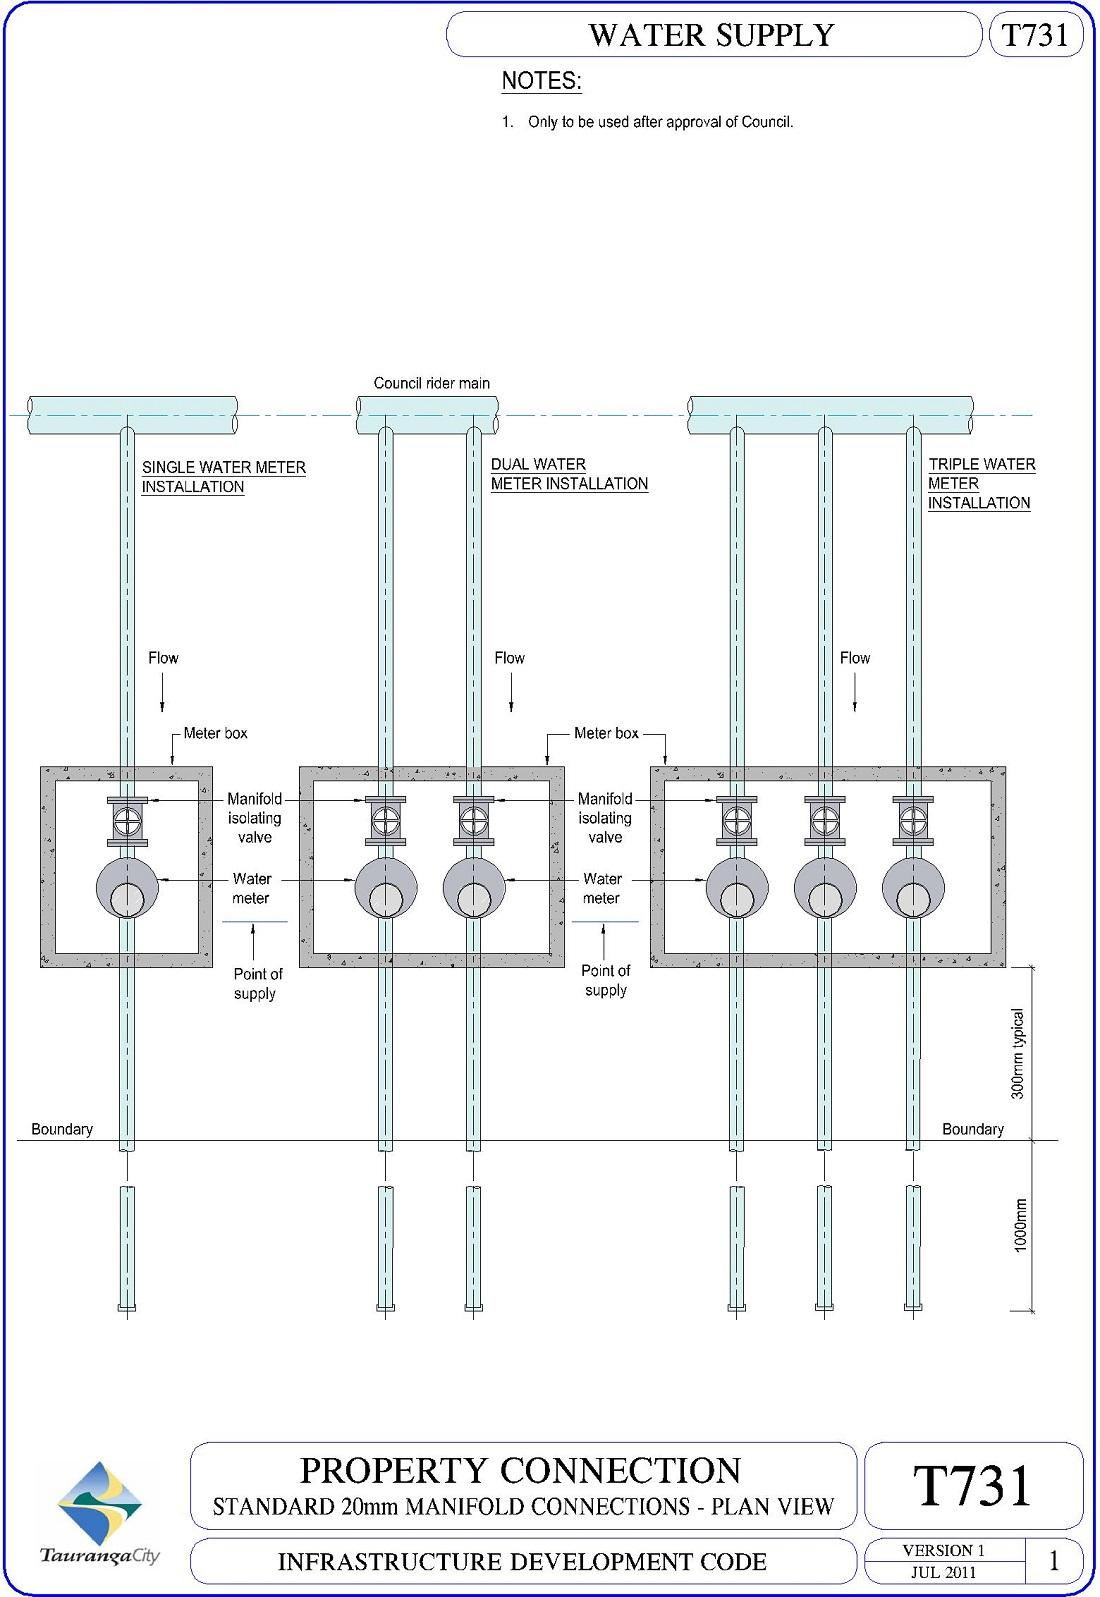 Standard 20mm Manifold Connections - Plan View